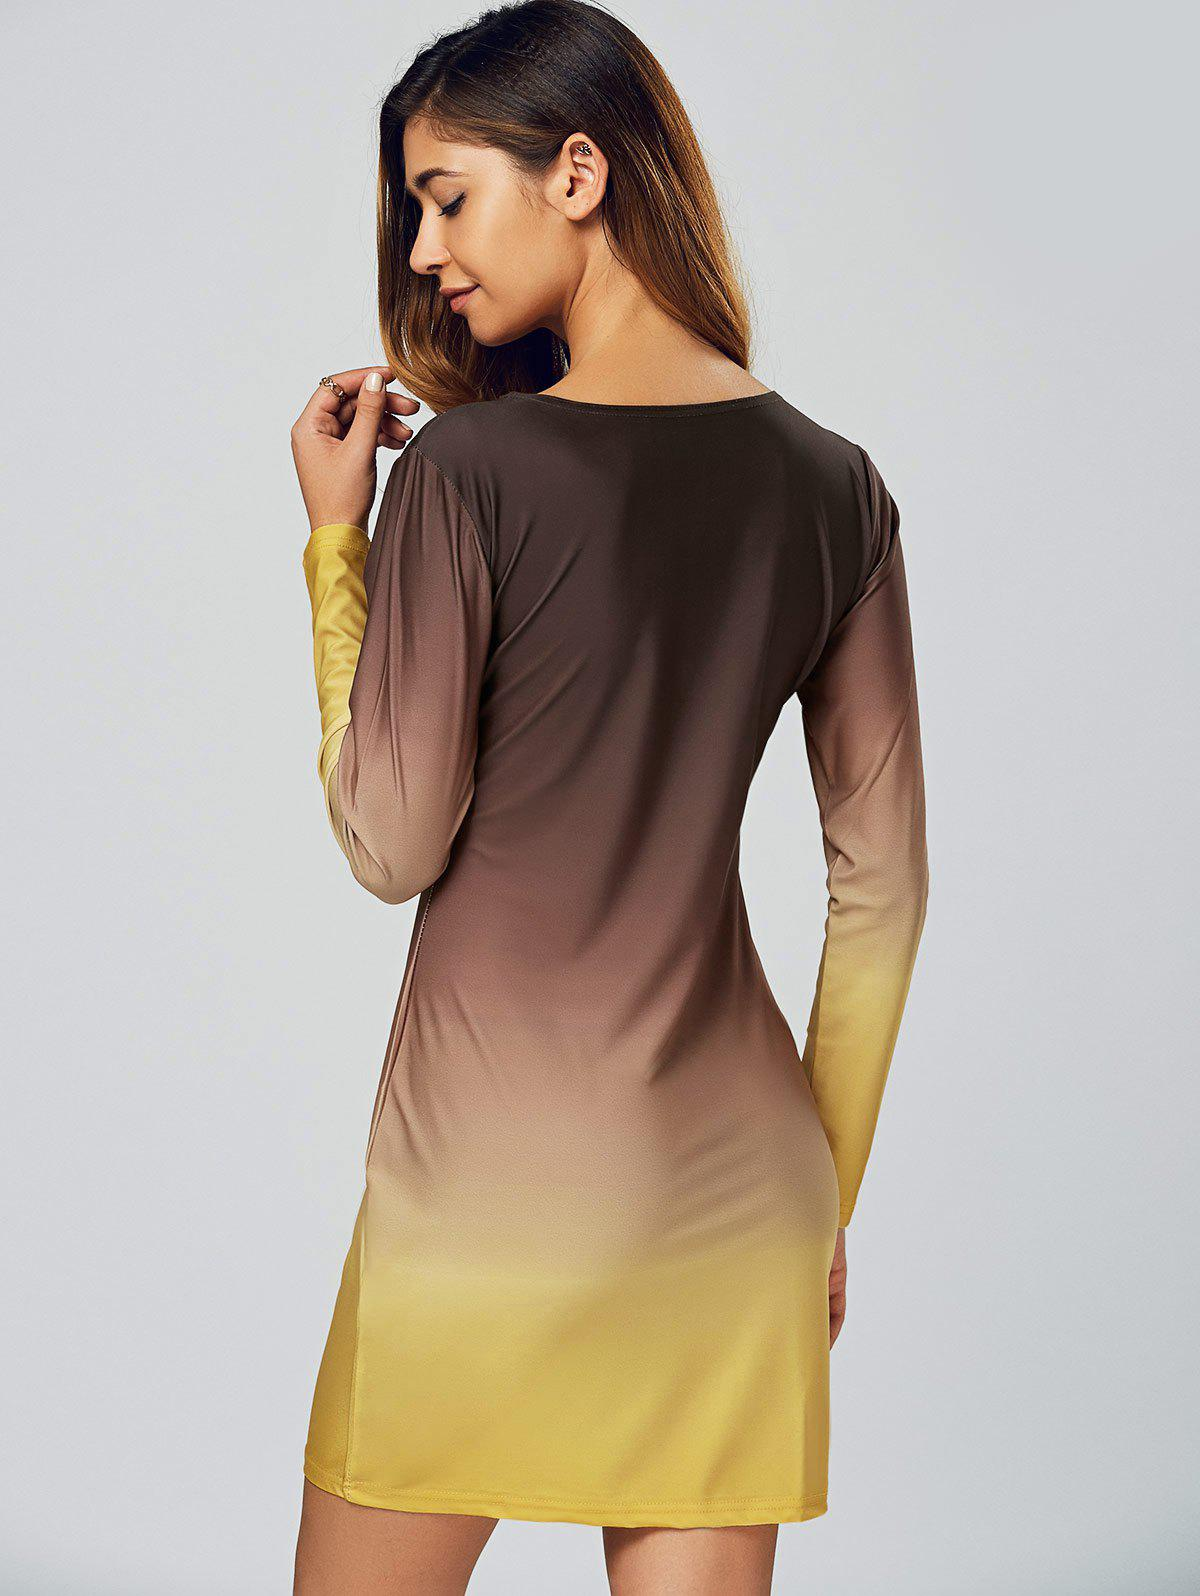 Coffee Yellow Xl Ombre Slimming Long Sleeve T Shirt Dress